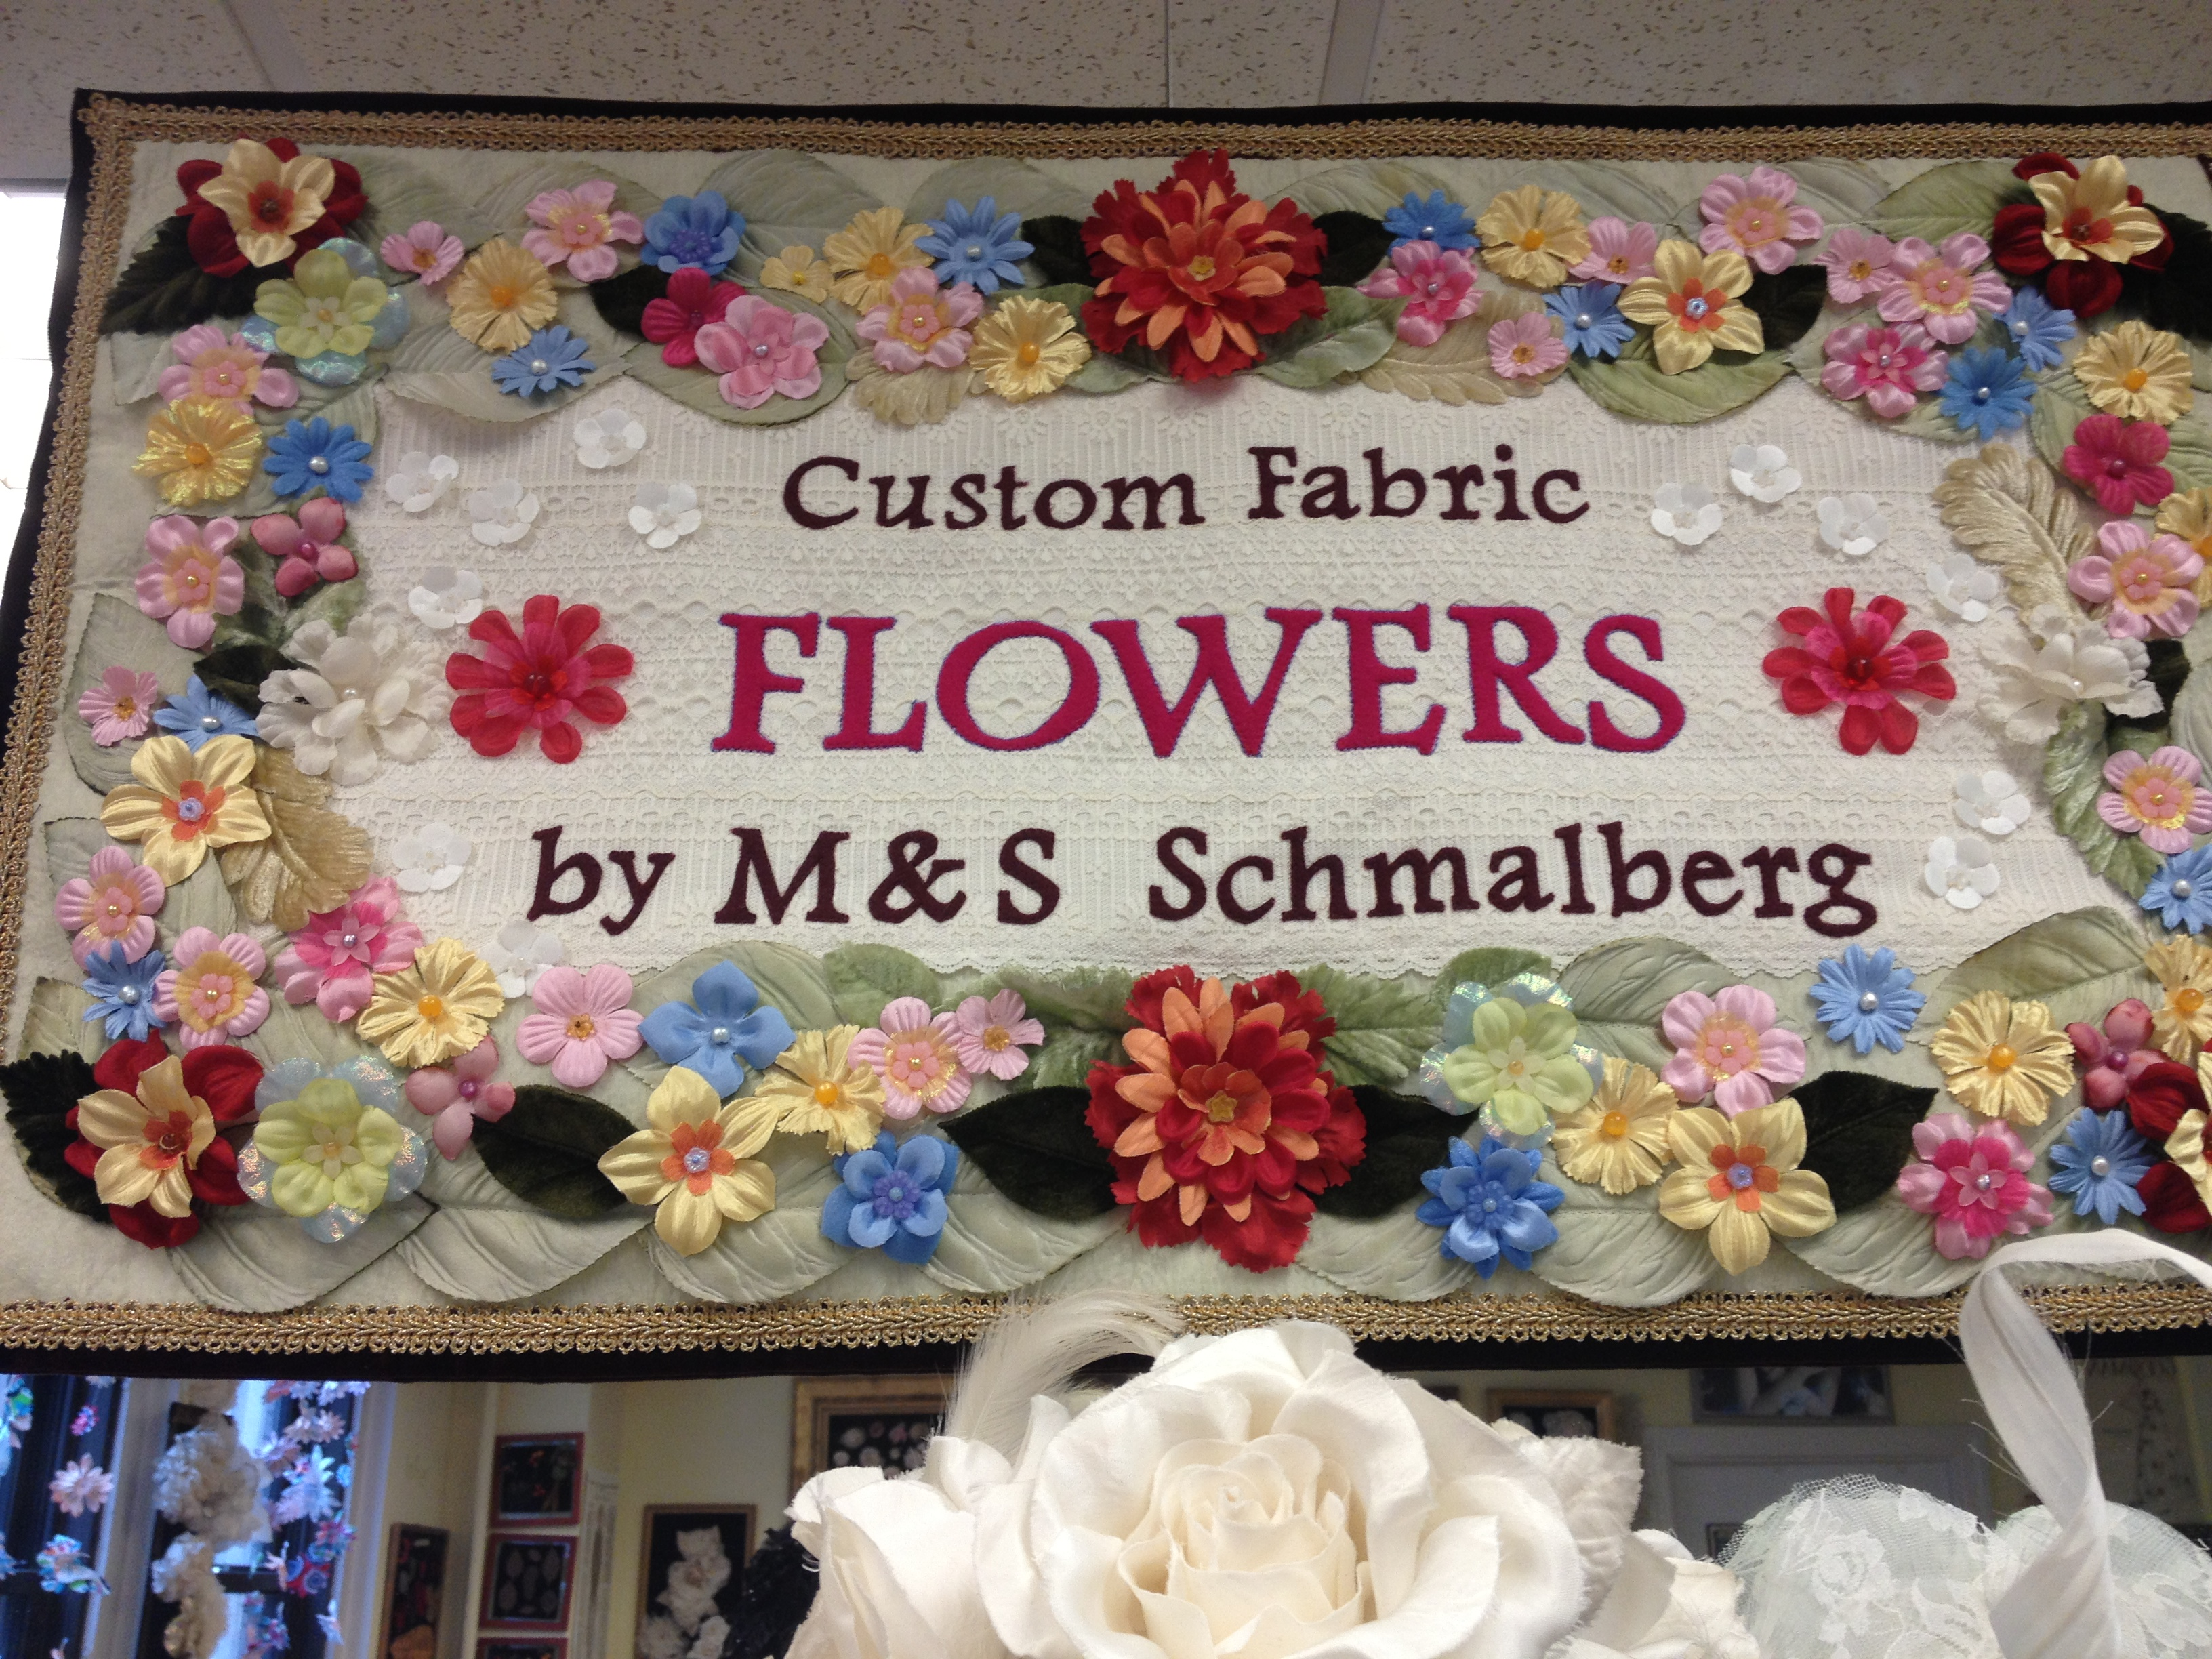 Custom Fabric Flowers by M & S Schmalberg